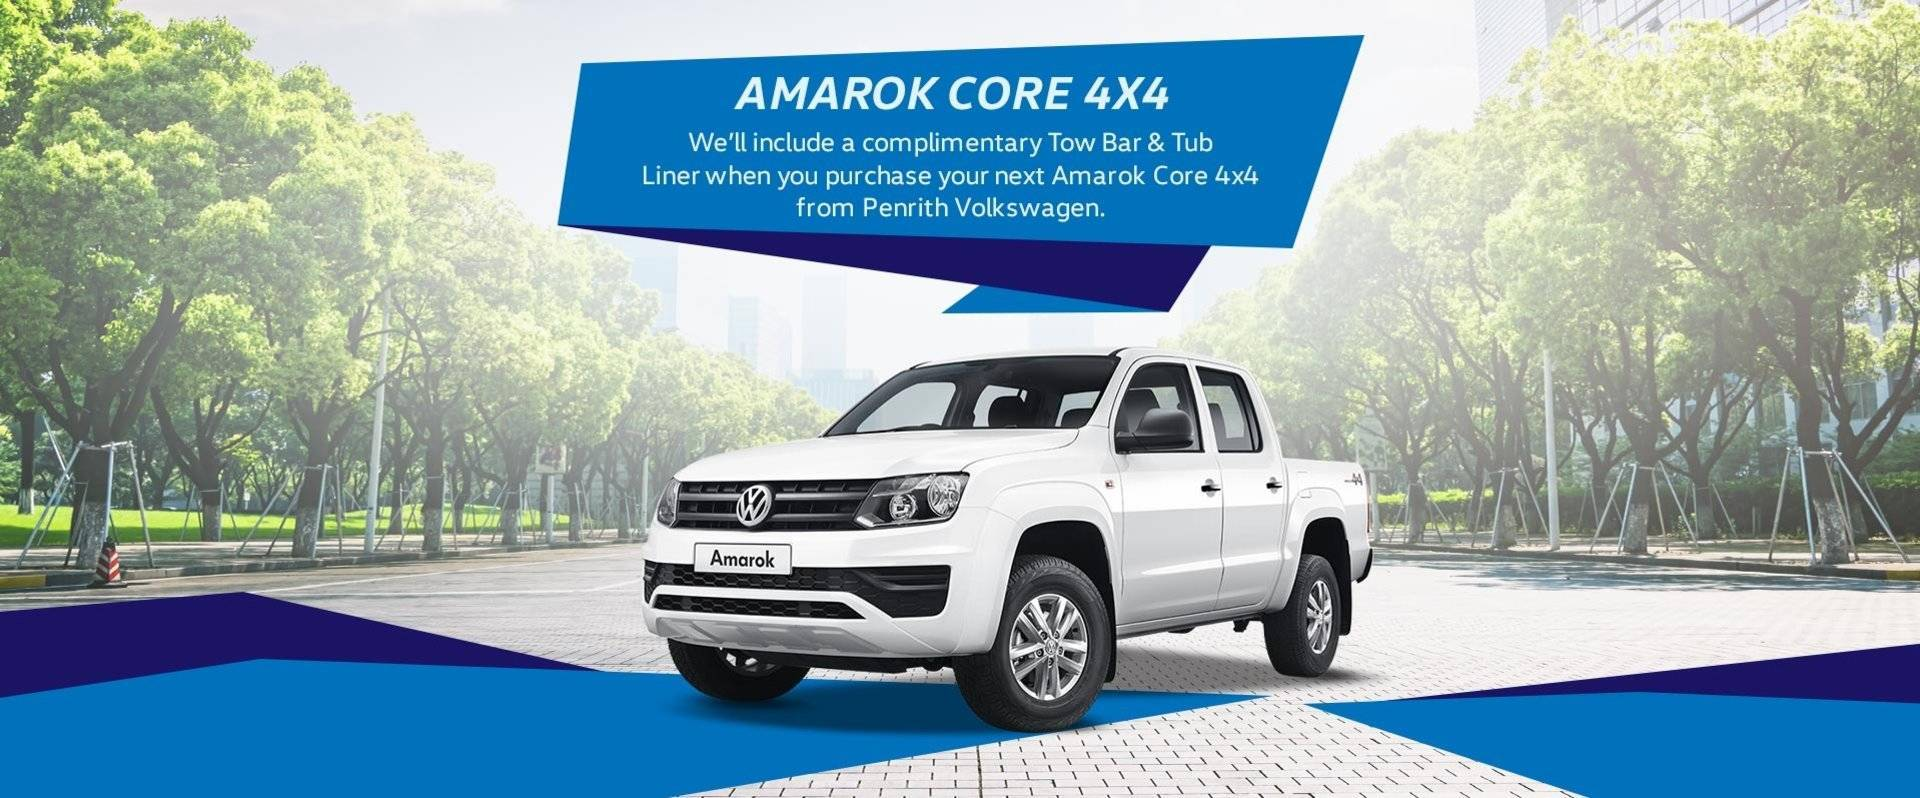 Amarok Core Offer - Complimentary Tub Liner + Tow Bar